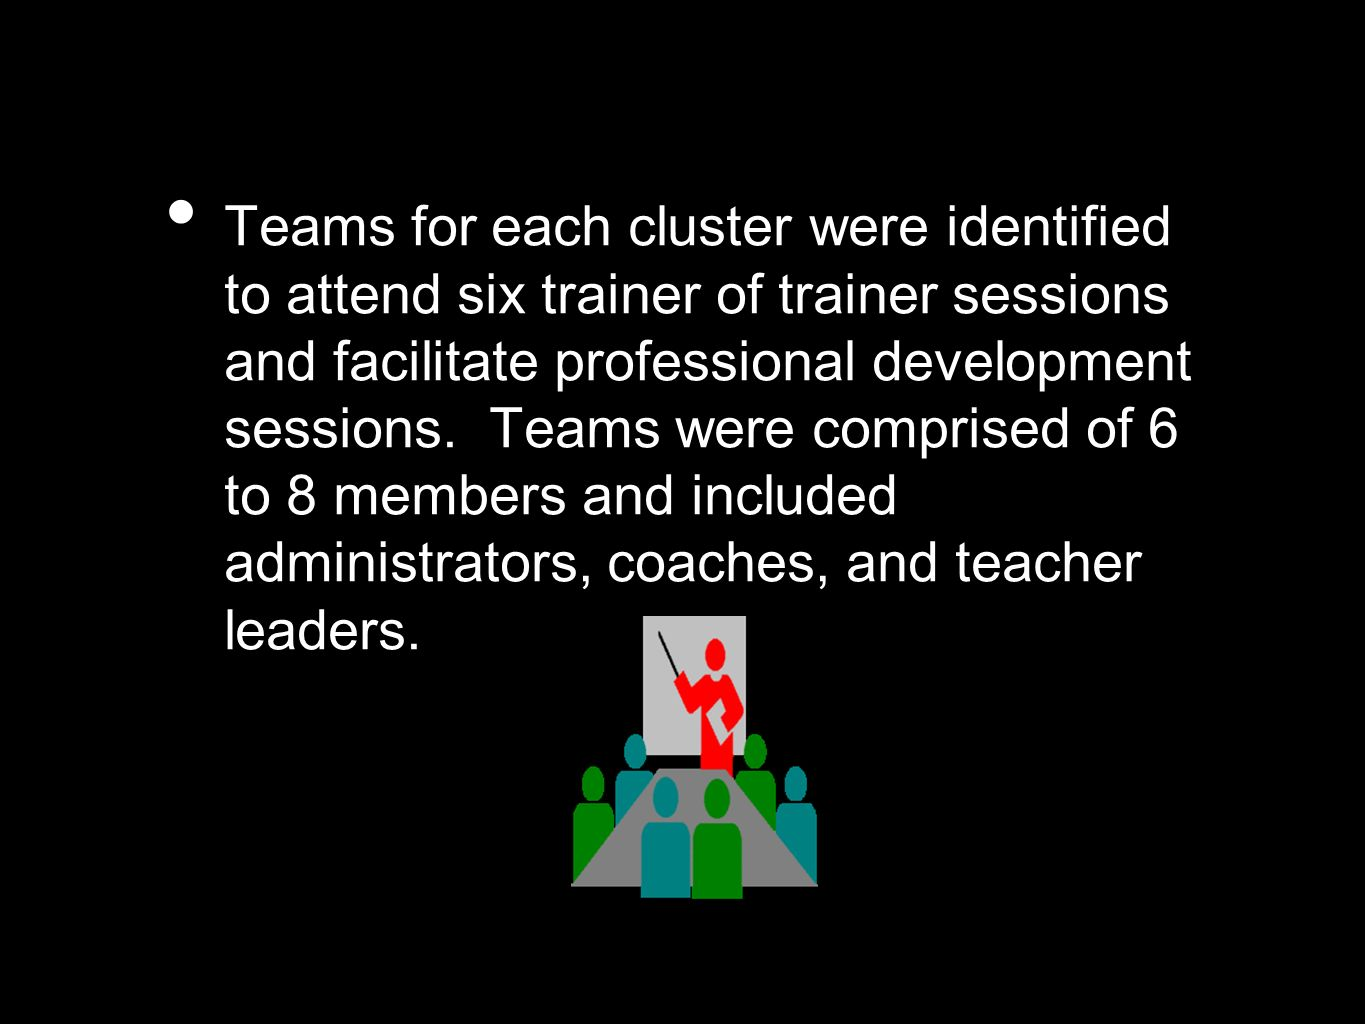 Teams for each cluster were identified to attend six trainer of trainer sessions and facilitate professional development sessions.